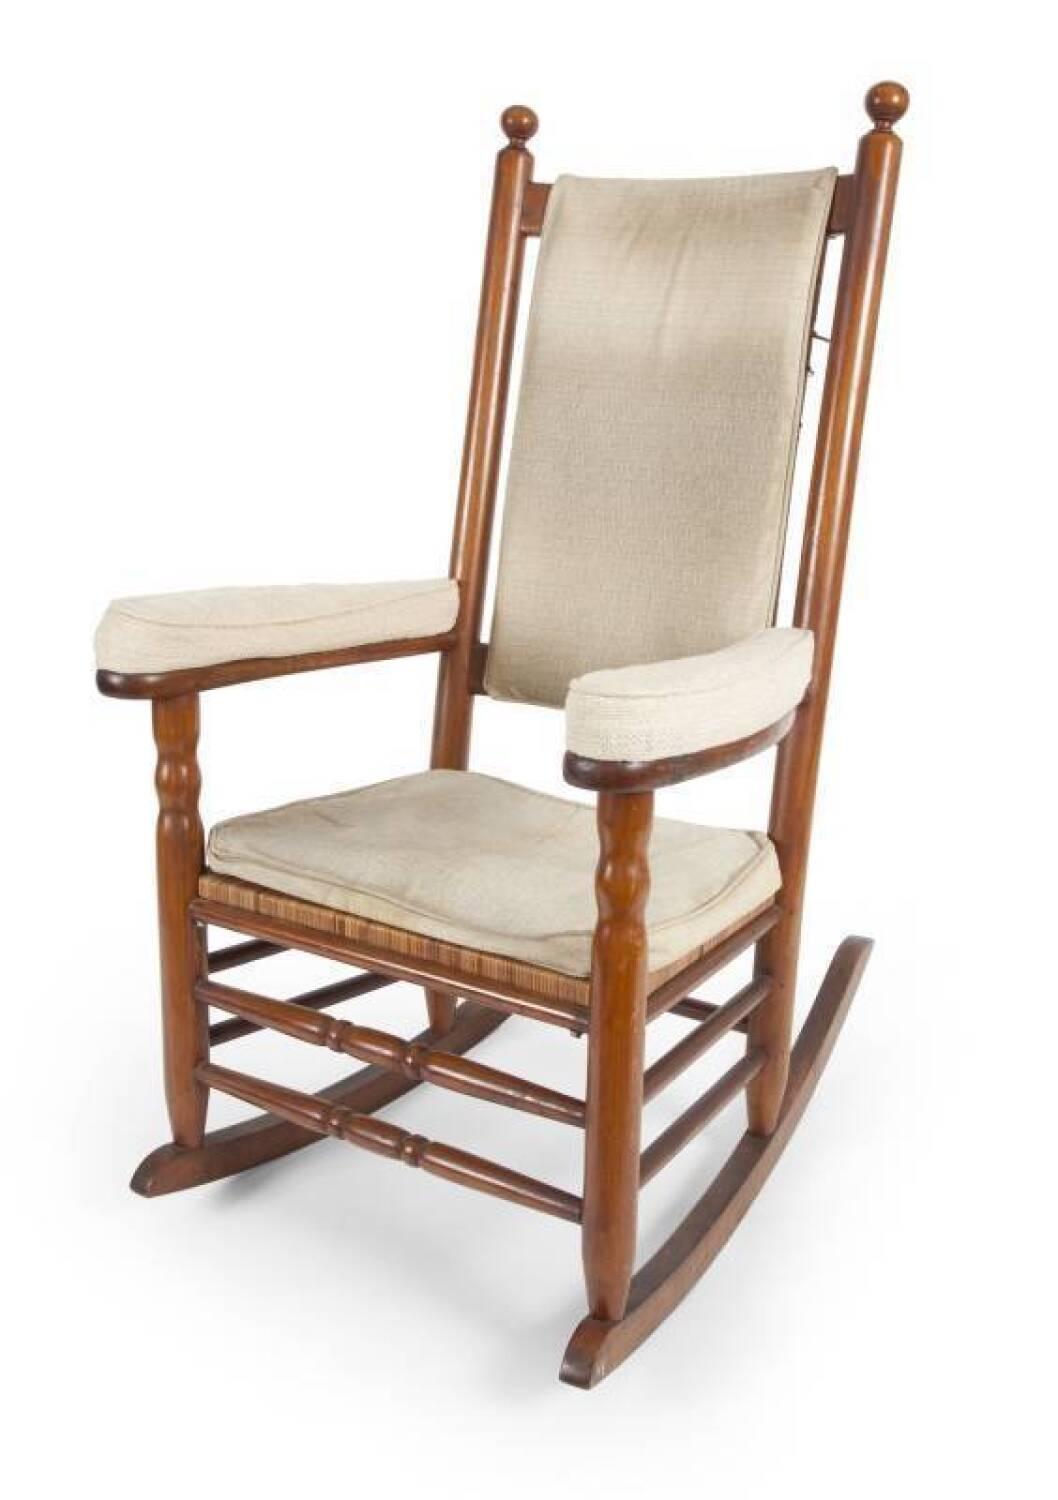 John F Kennedy Rocking Chair Current Price 70000